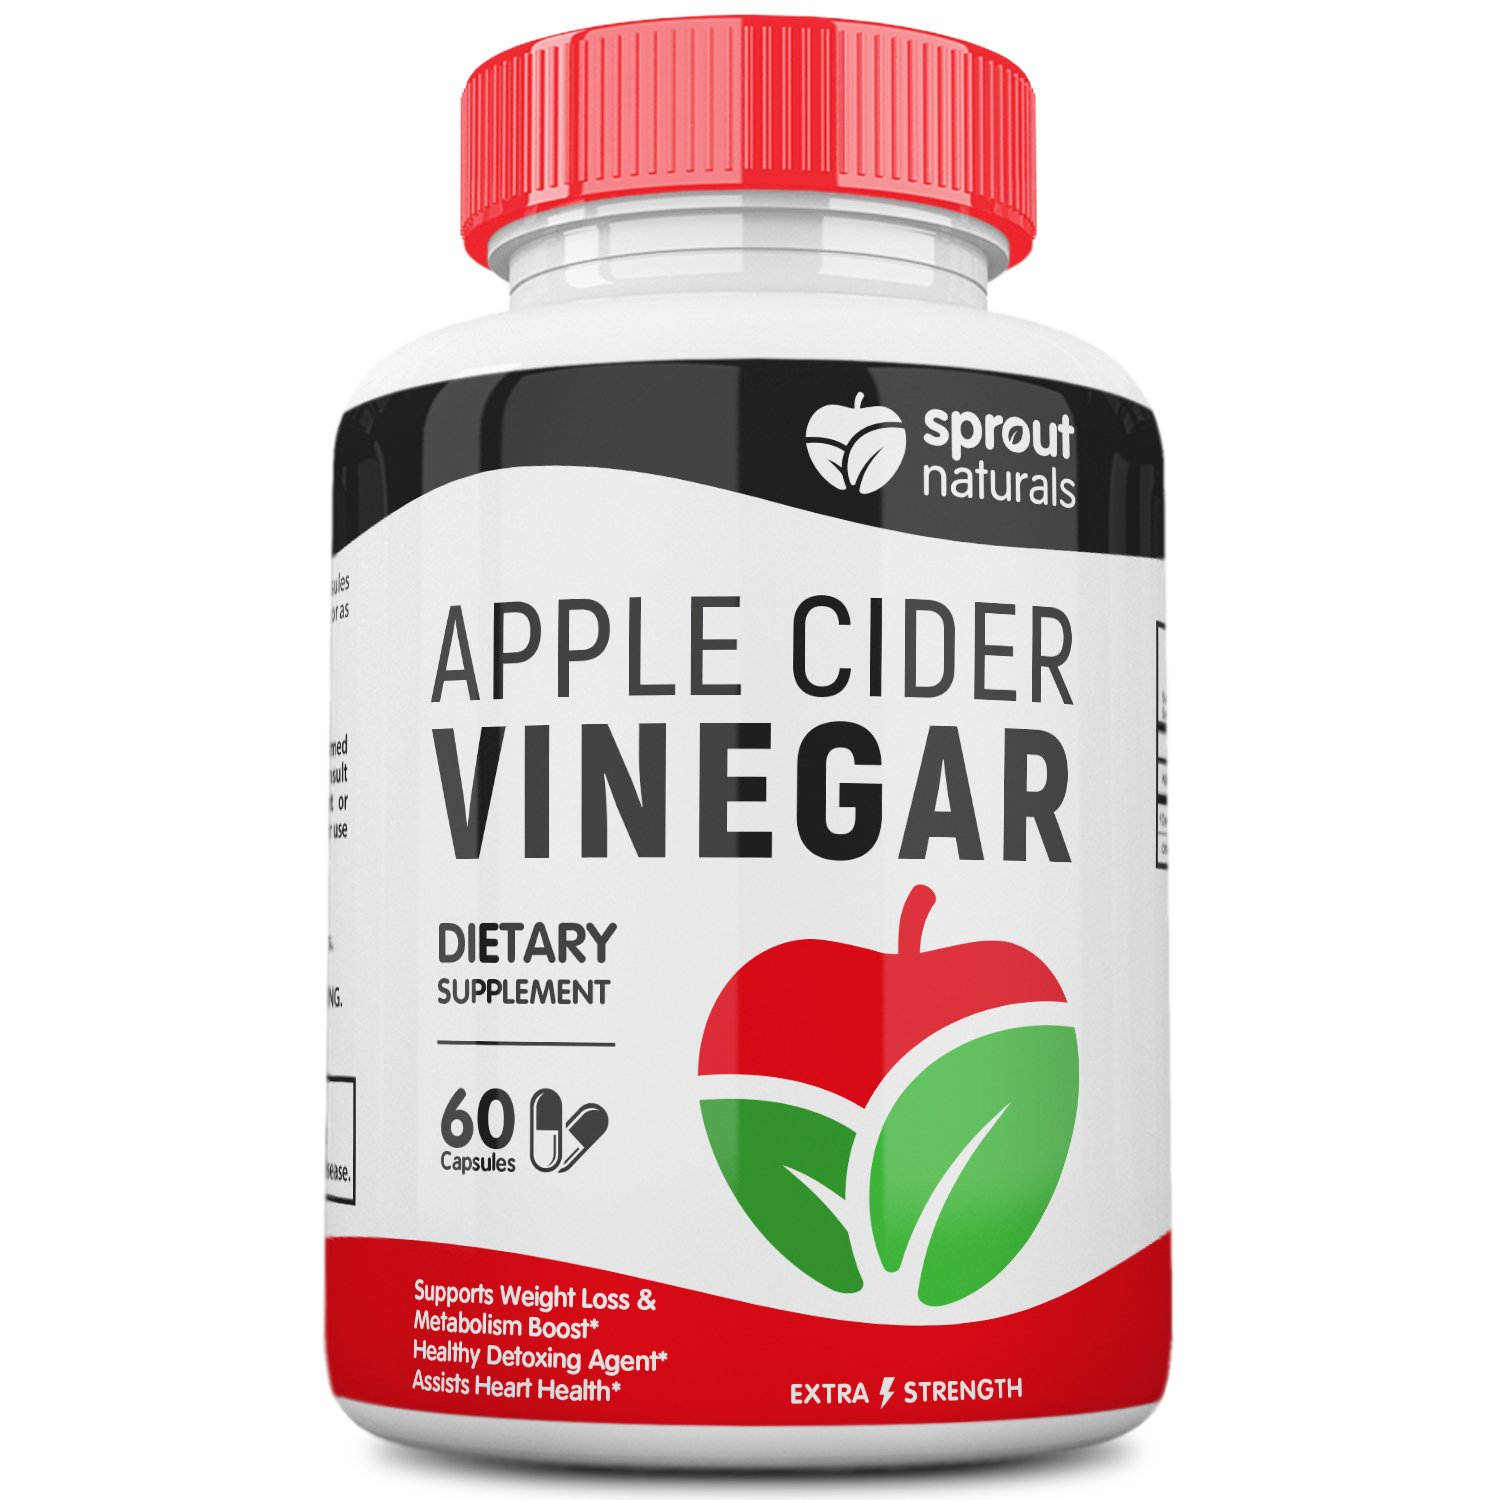 Extra Strength Apple Cider Vinegar Capsules (1300mg) - Potent Detoxifier, Weight Loss, and Metabolism Booster* - Potent 1300mg dose of Pure Apple Cider Vinegar - Manufactured in USA - 60 Capsules by Sprout Naturals